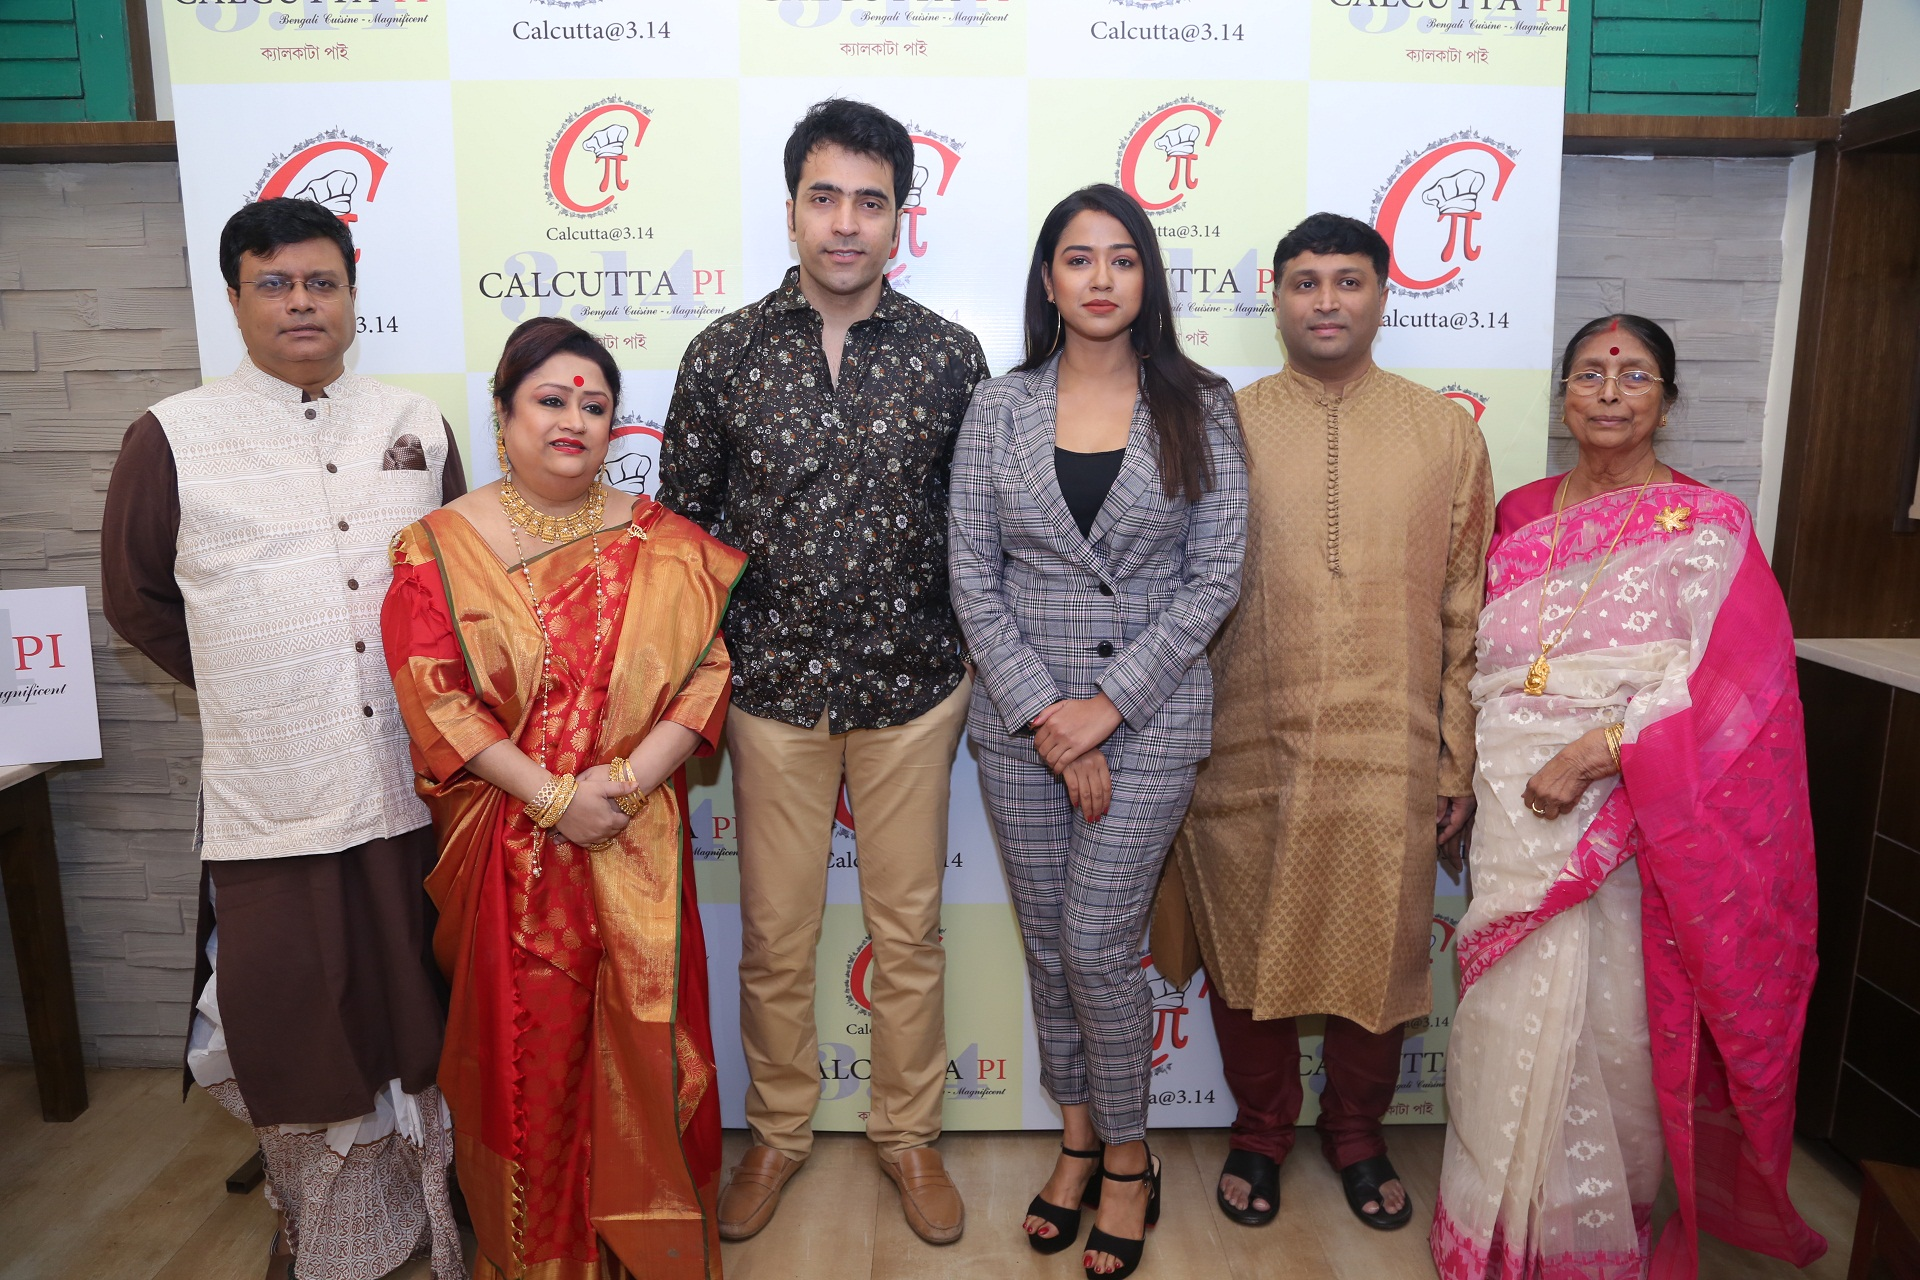 Actors Abir Chatterjee and Sohini Sarkar launch an authentic Bengali cuisine restaurant in the heart of the city